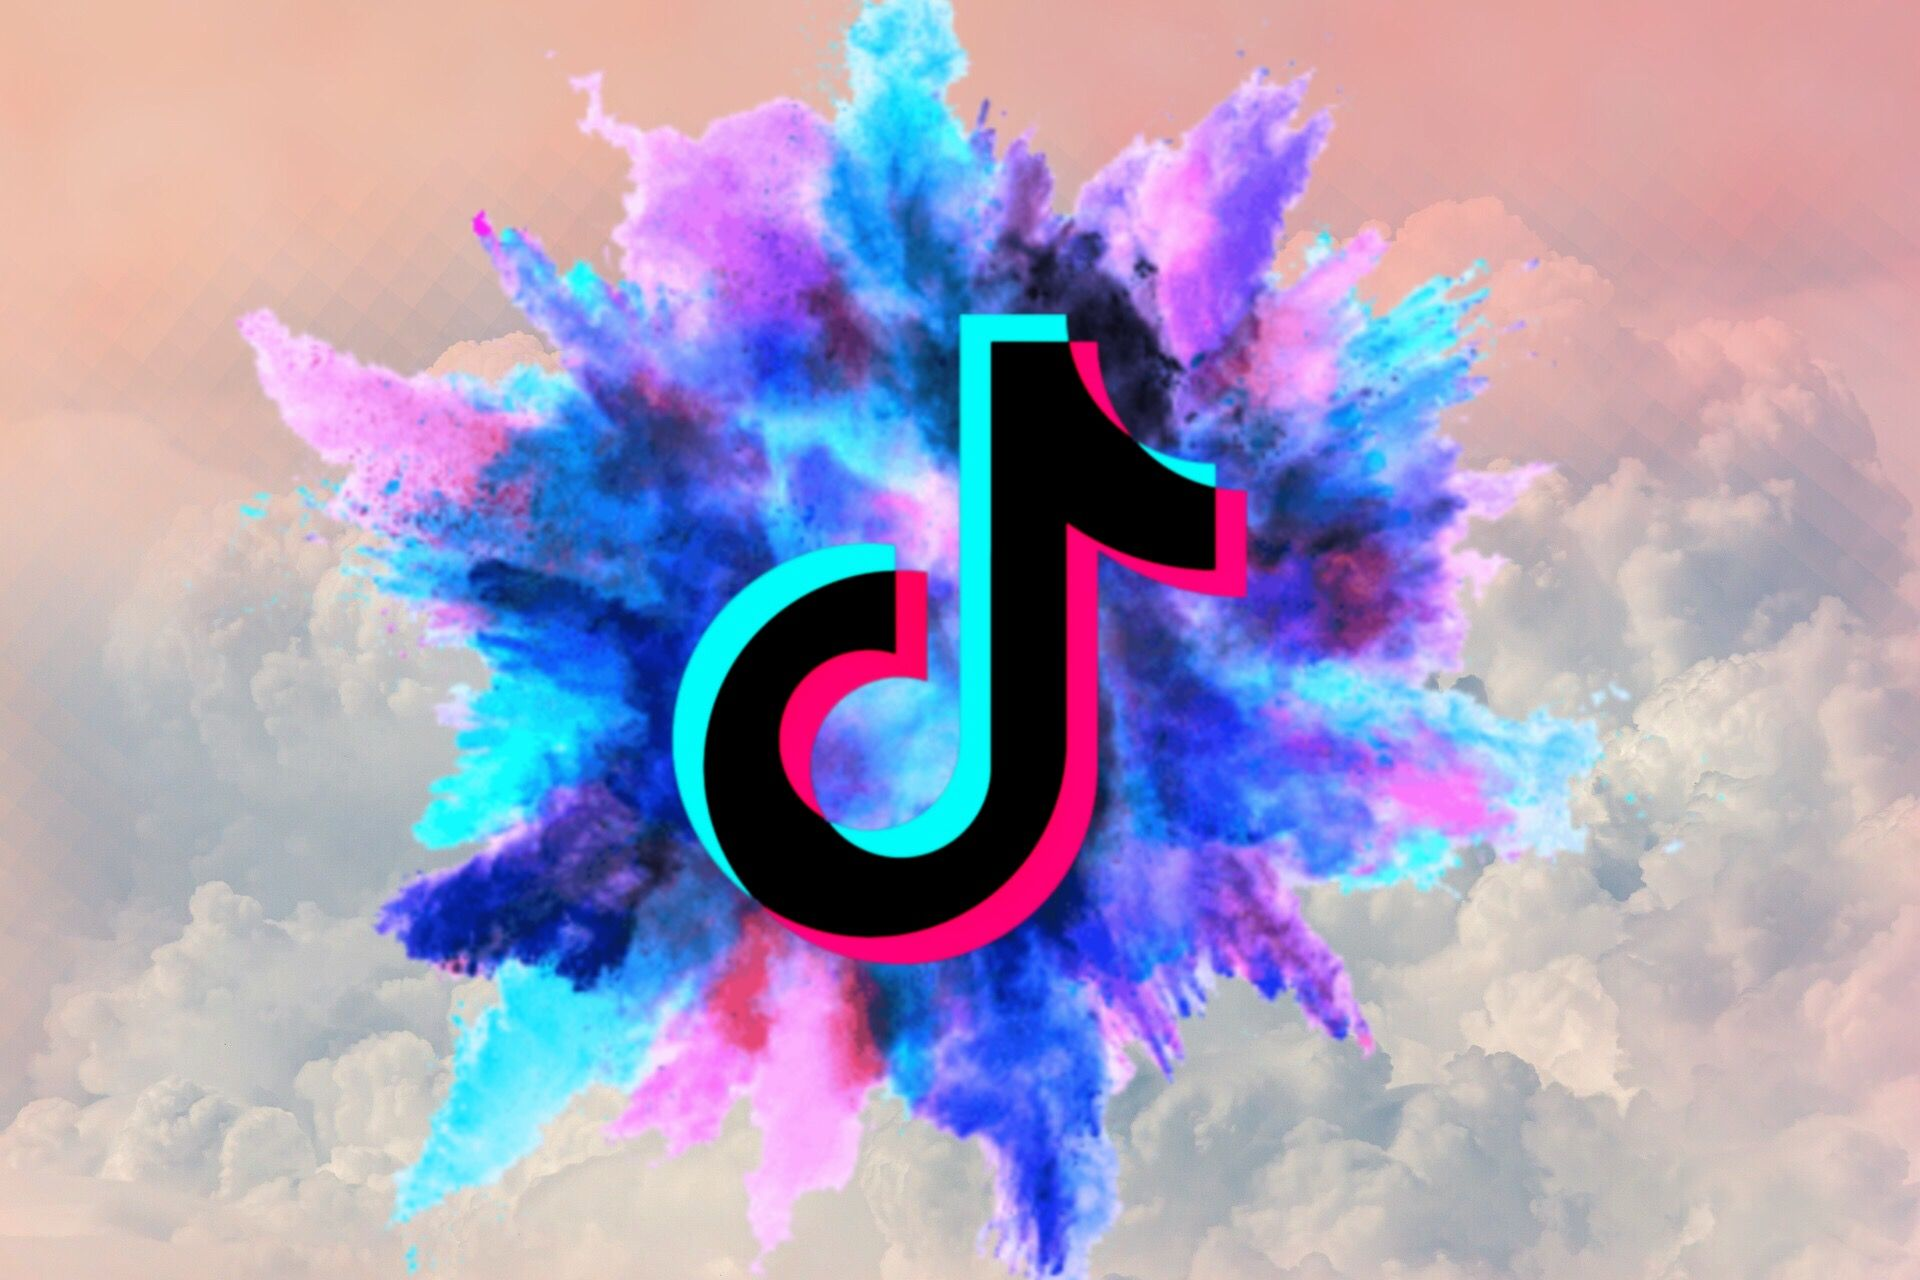 How to Decorate Your Pc wallpaper With TIK Tok Wallpaper ...